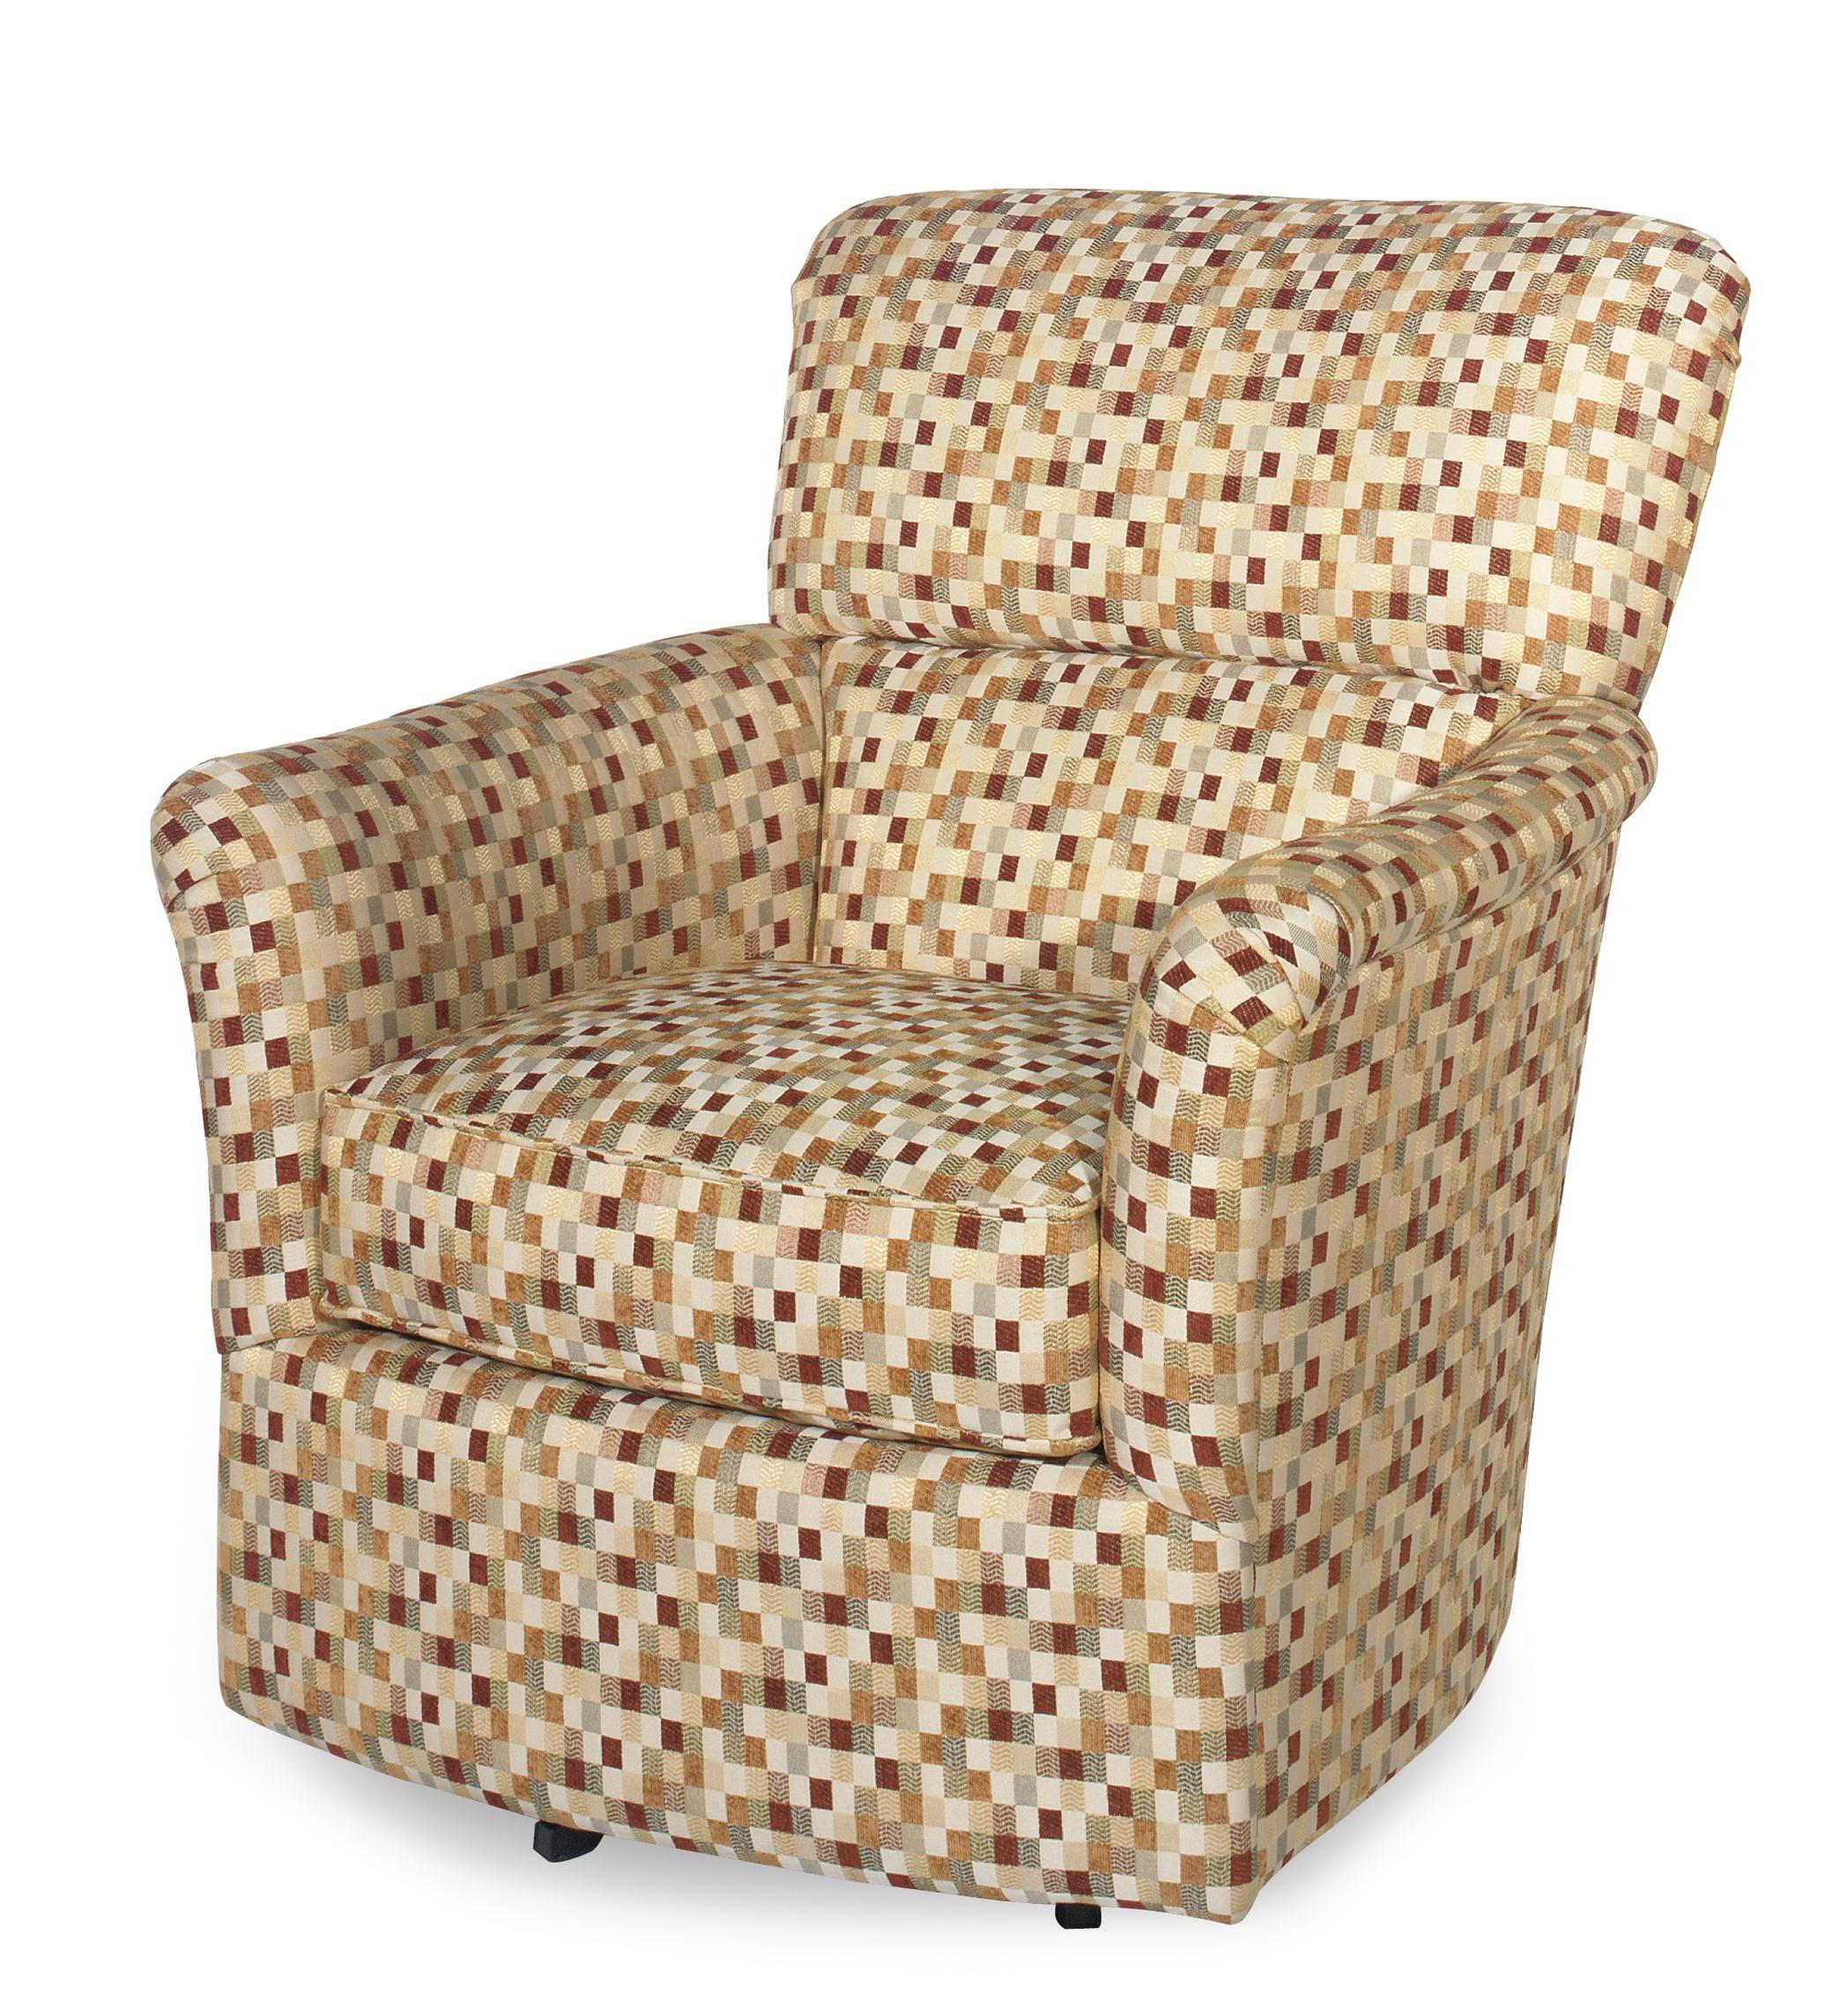 Swival Chairs Swivel Chairs Contemporary Upholstered Swivel Glider Chair